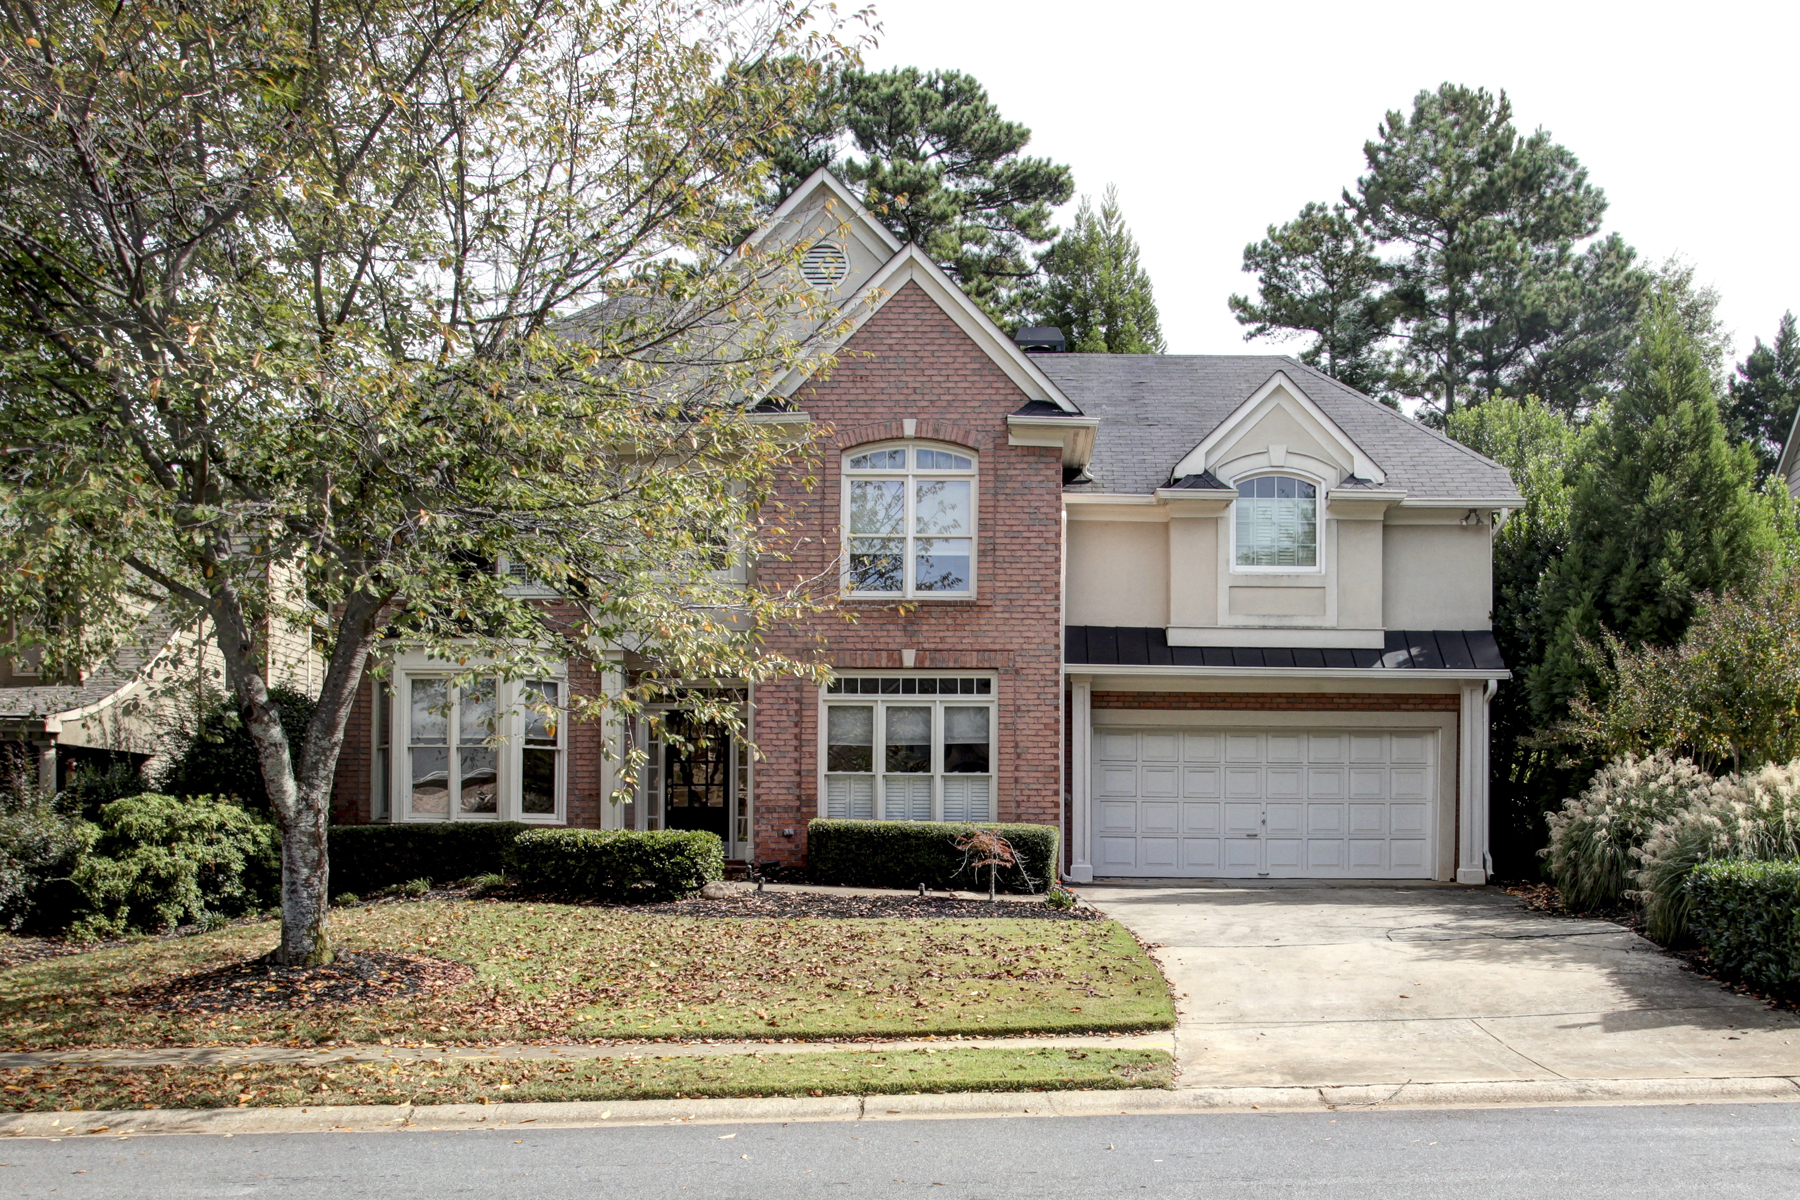 단독 가정 주택 용 매매 에 Beautiful Home With Gorgeous Backyard, Conveniently Located 4517 Weldon Drive SE Smyrna, 조지아 30080 미국